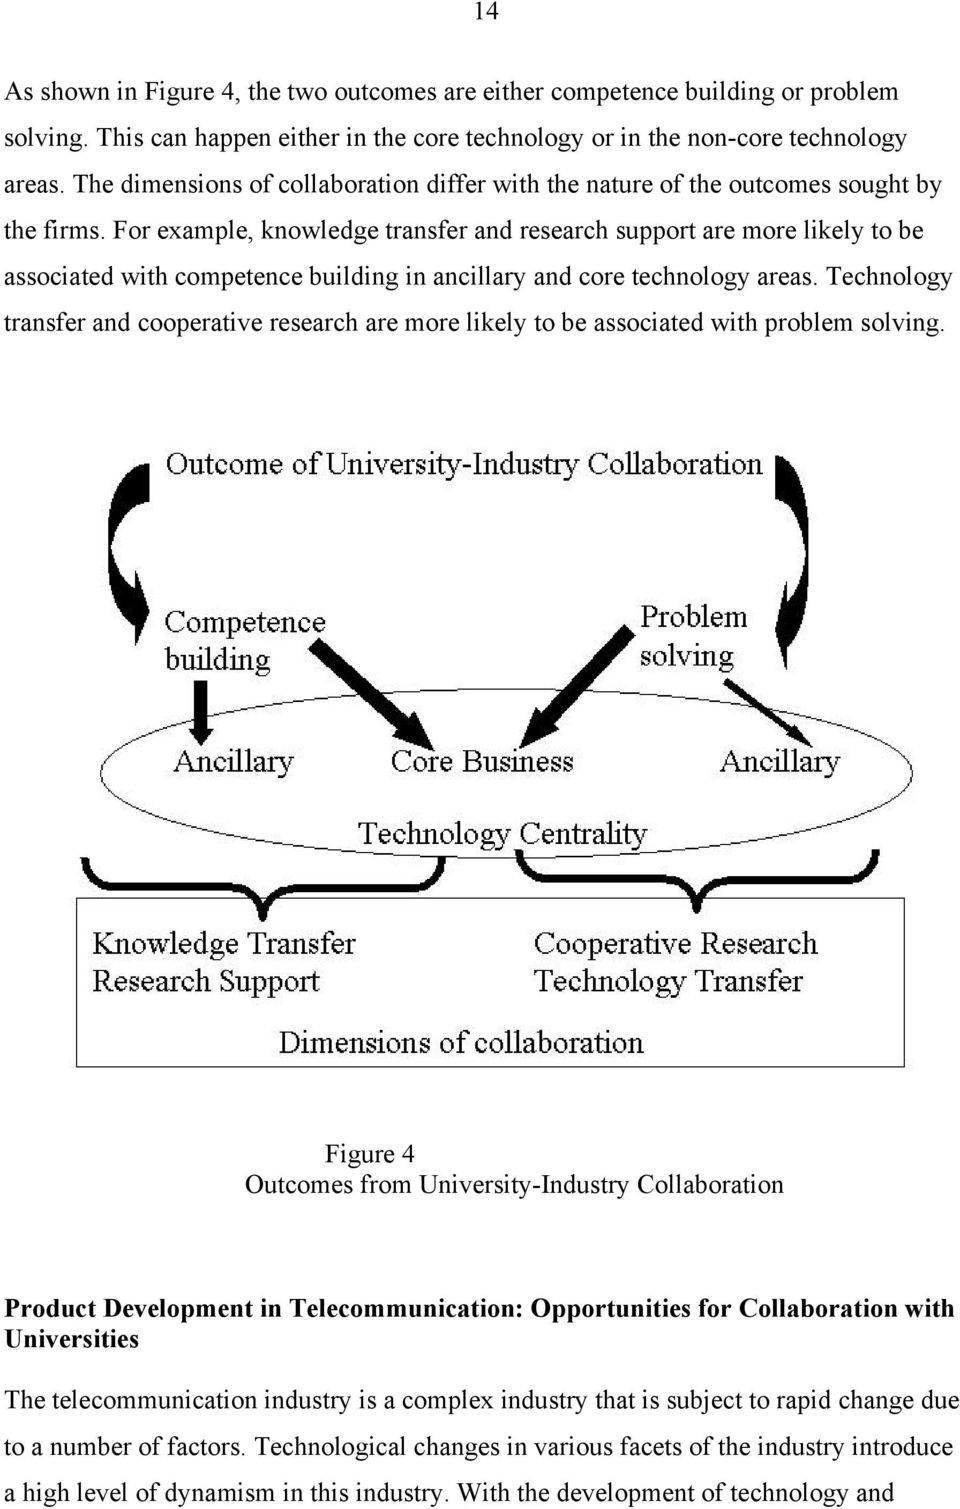 For example, knowledge transfer and research support are more likely to be associated with competence building in ancillary and core technology areas.